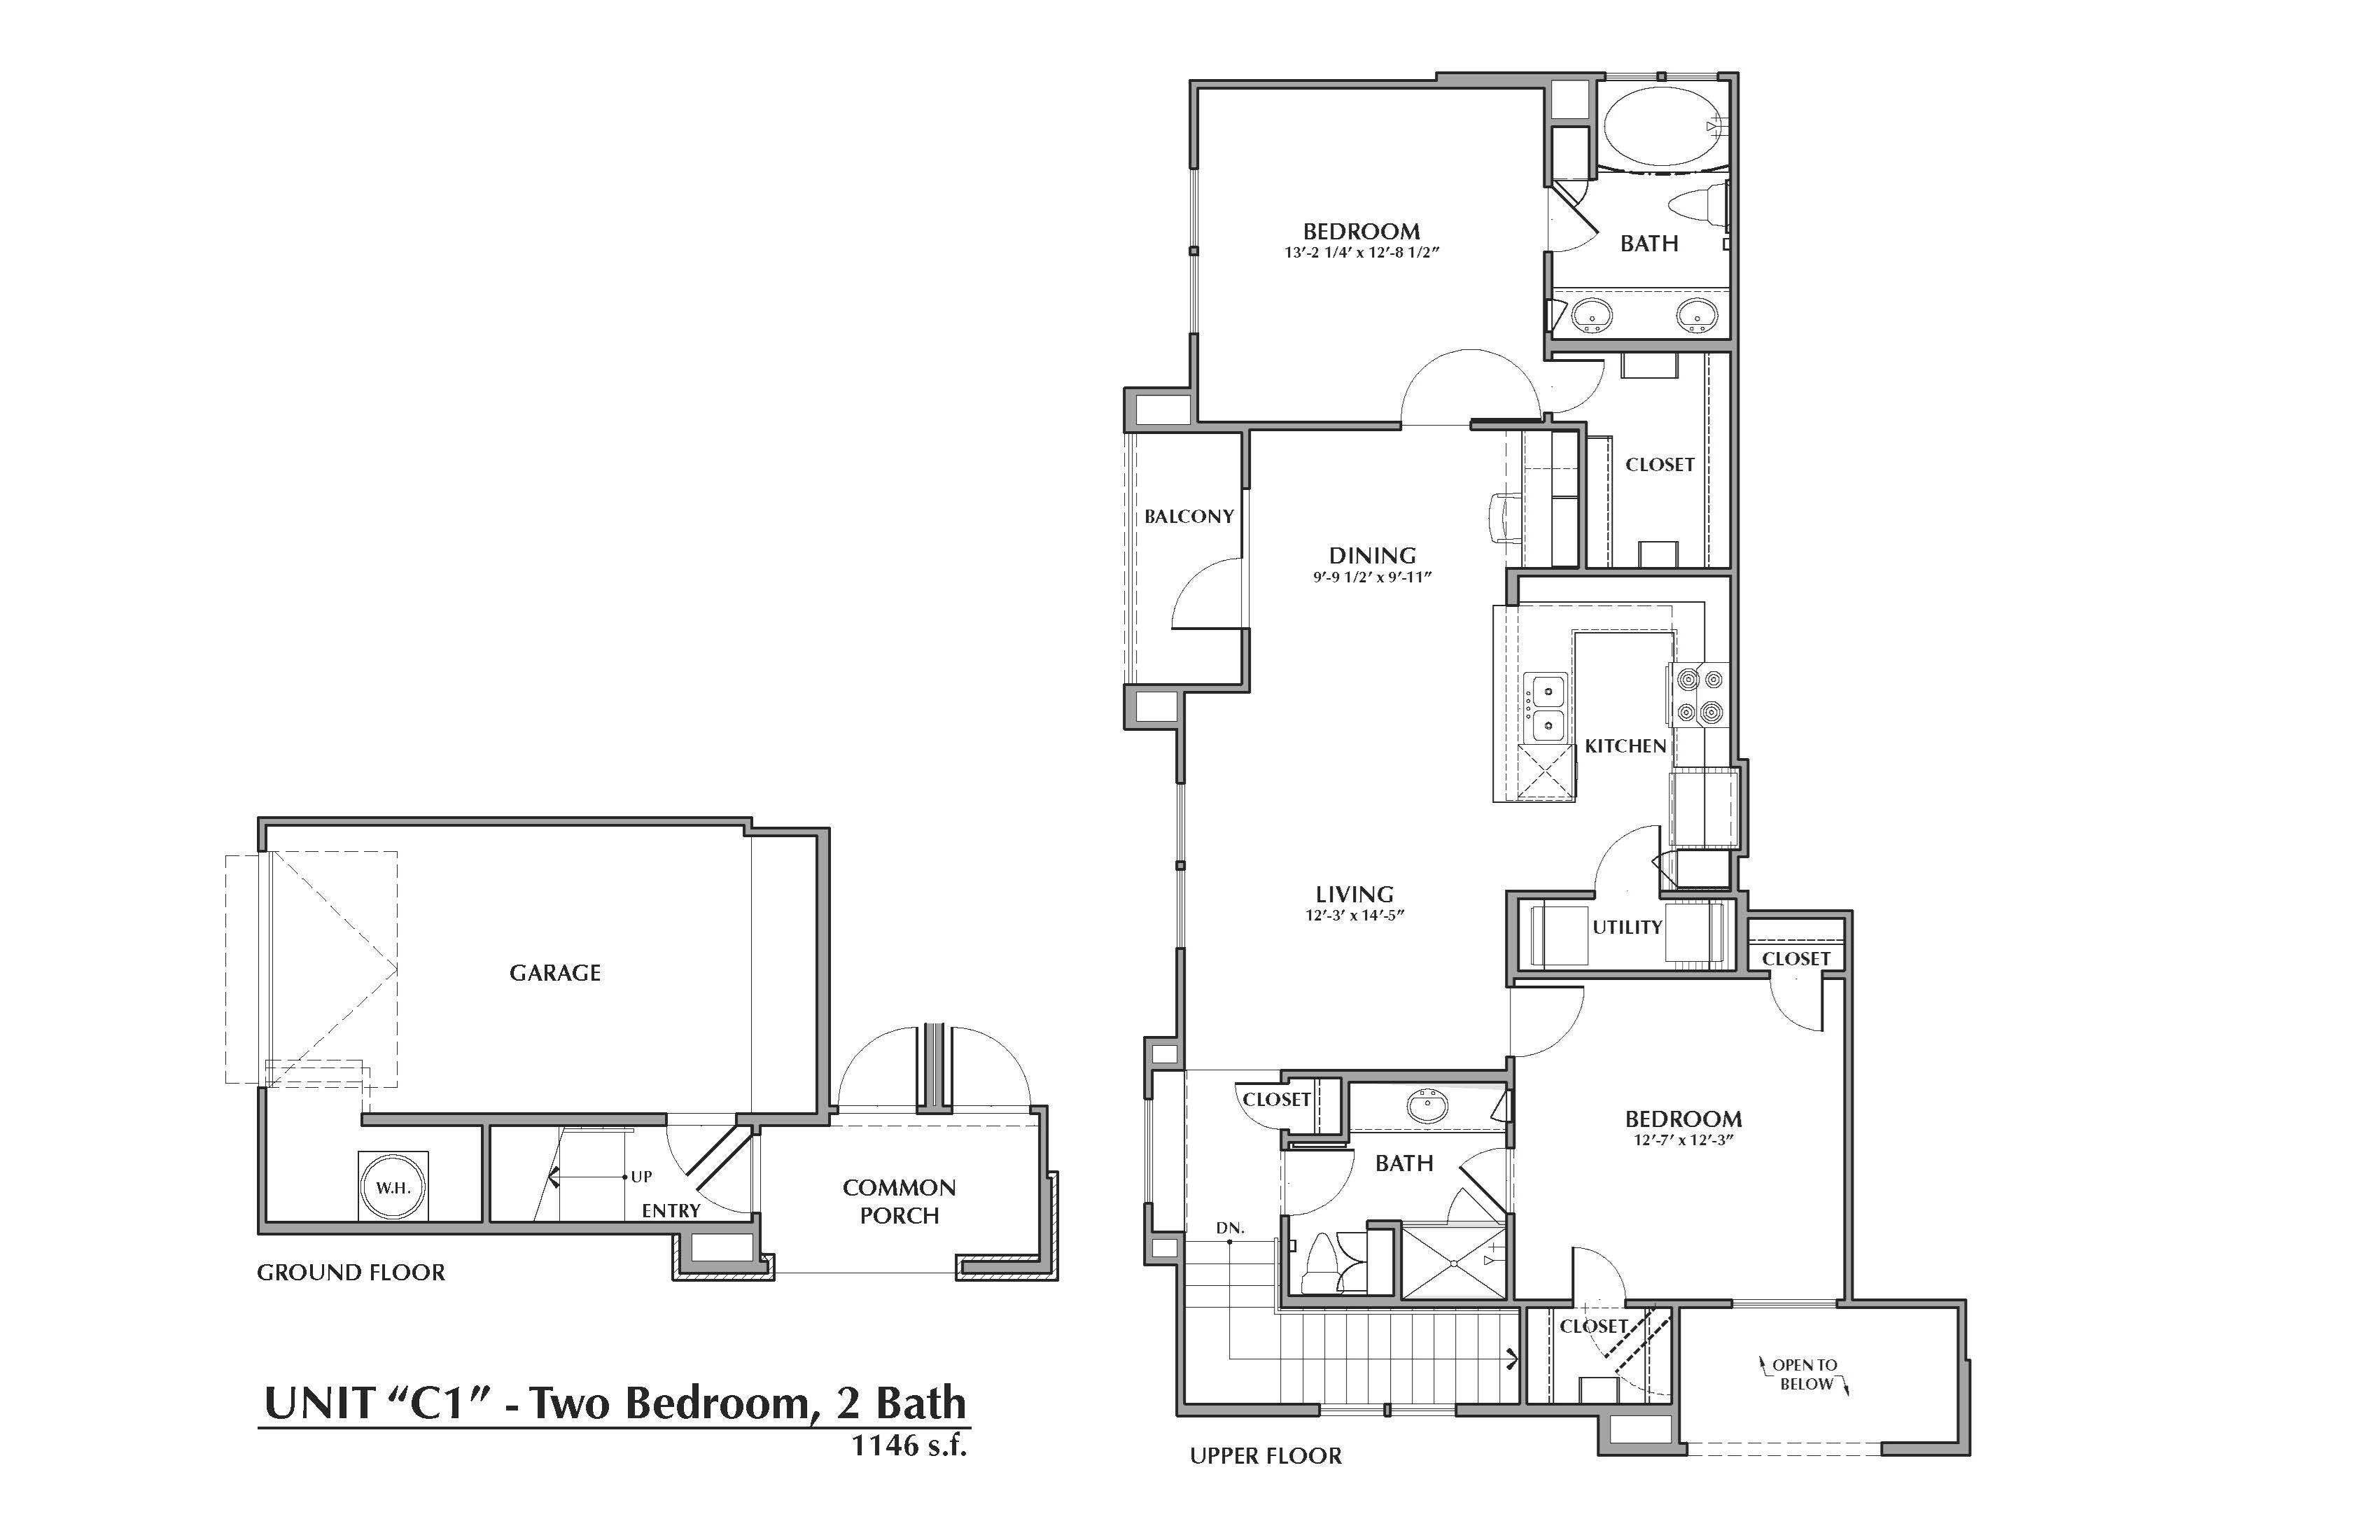 C1-Pindo, 2x2 1146sf (with attached garage) Floor Plan 13